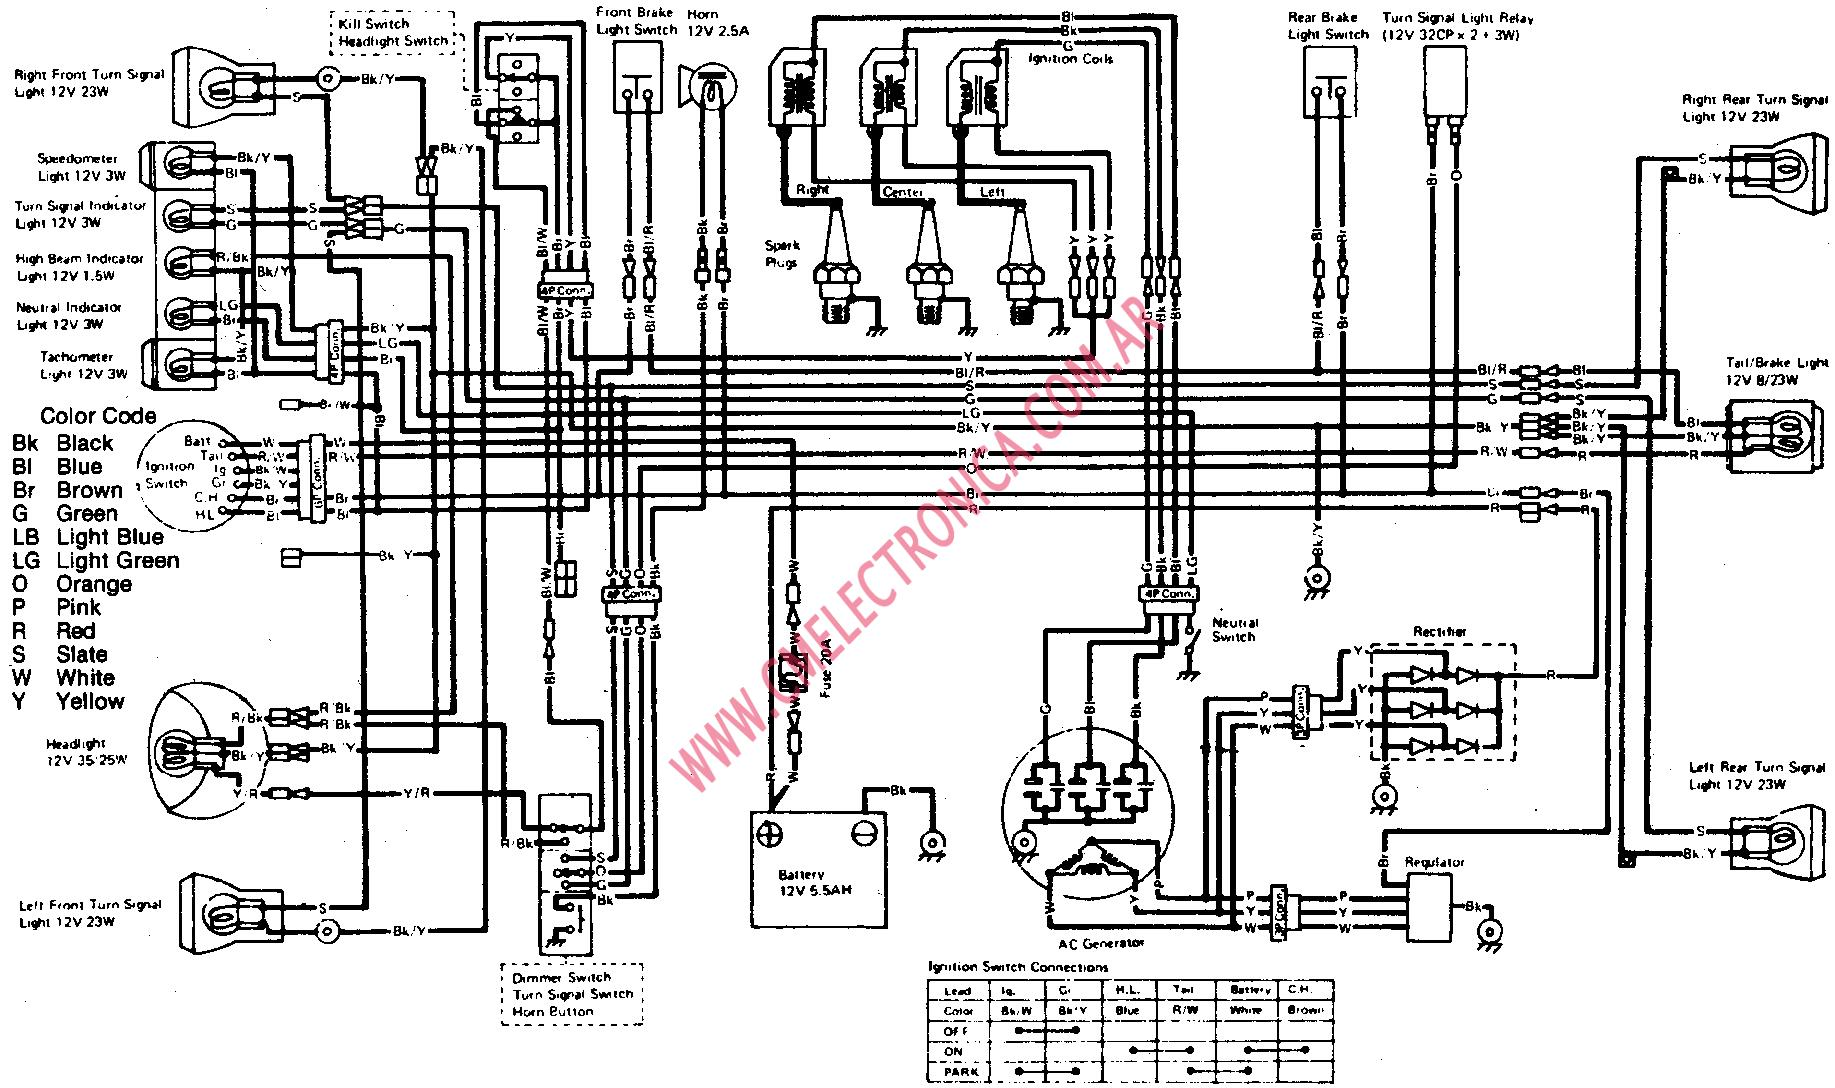 1995 polaris wiring diagram | wiring diagram 1995 polaris 300 4x4 wiring diagram polaris ignition switch wiring diagram wiring diagram - autoscout24